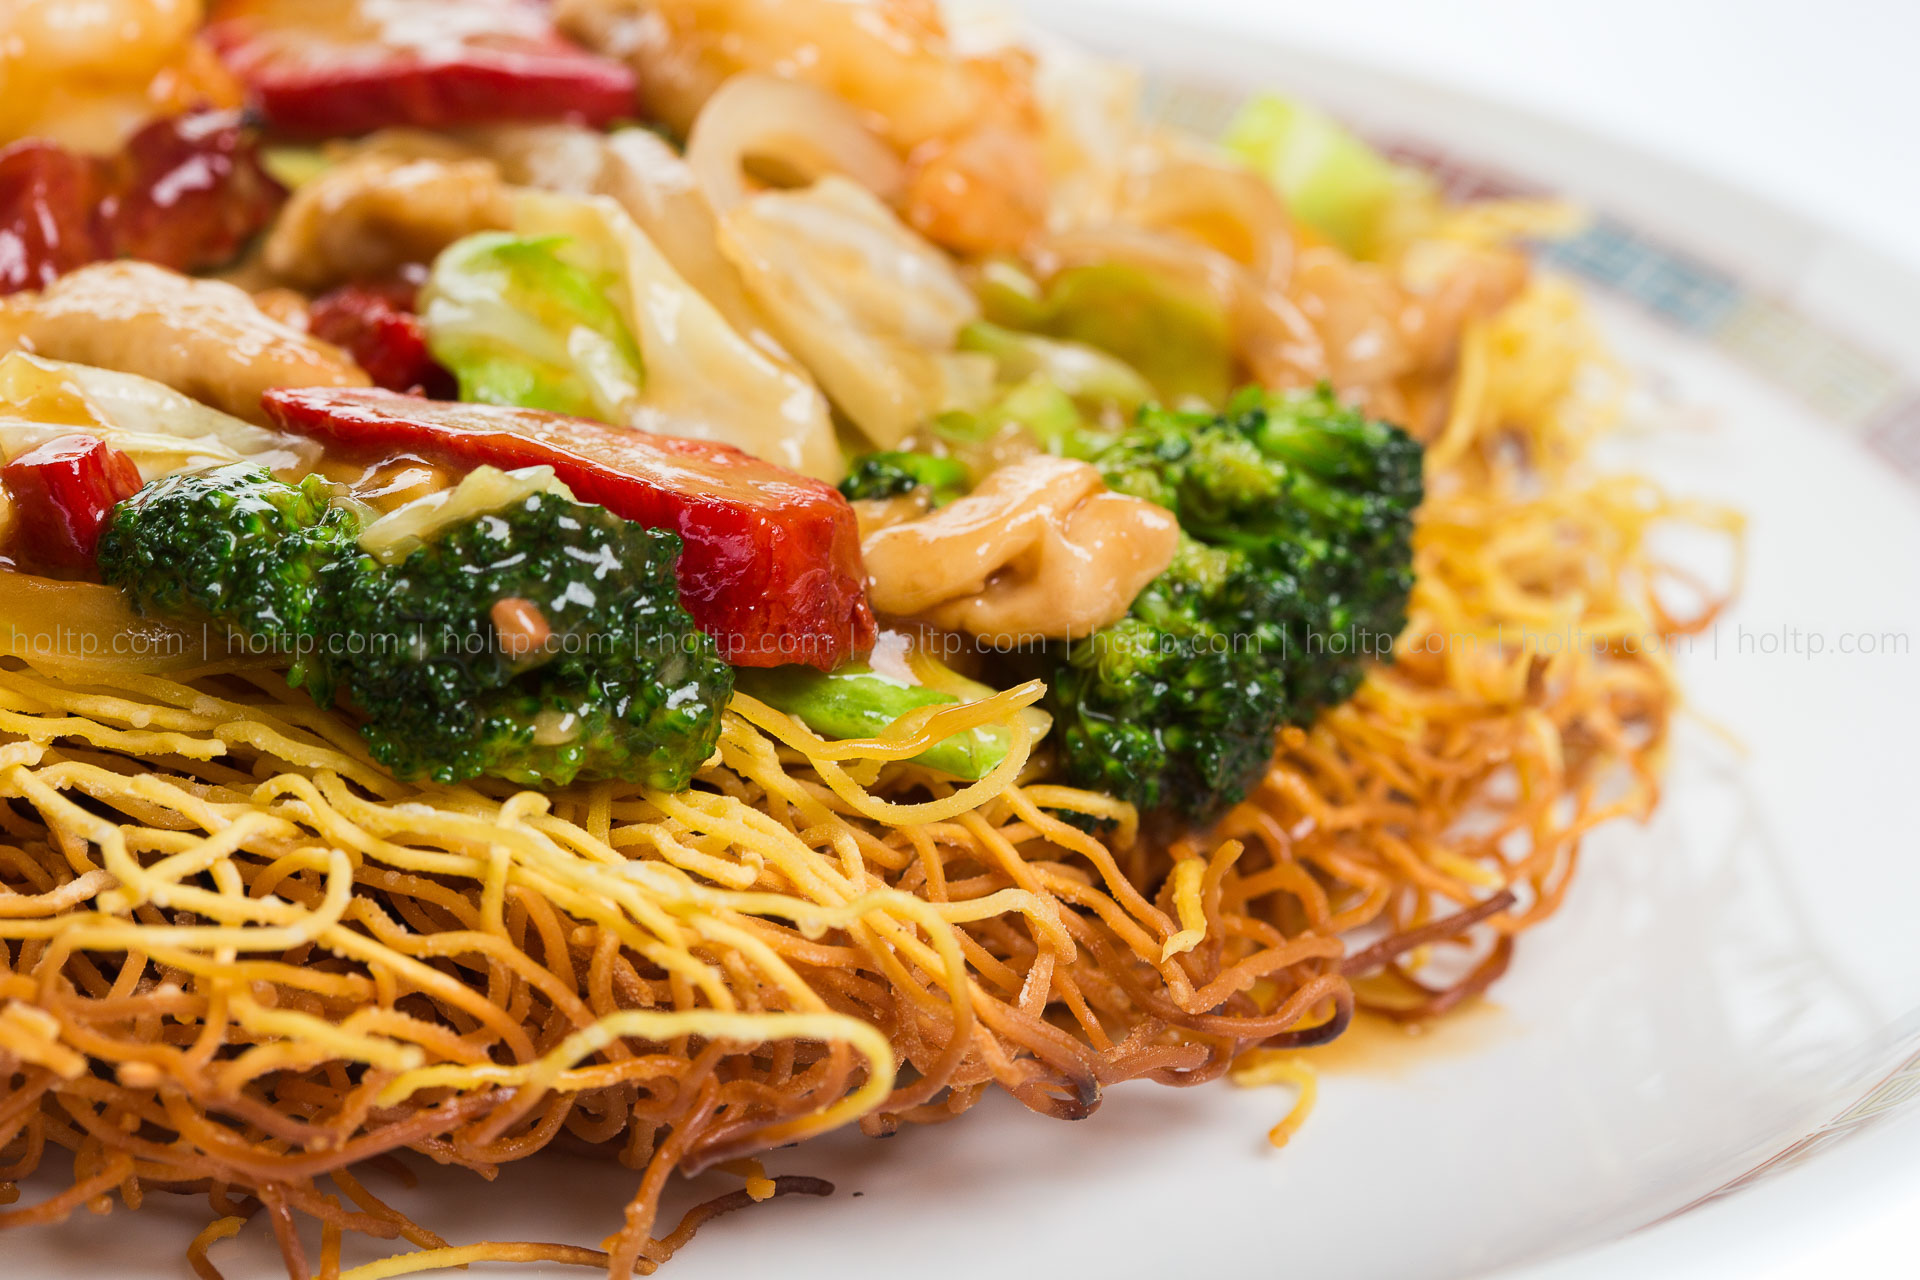 Jade Chinese Restaurant | Food Photography